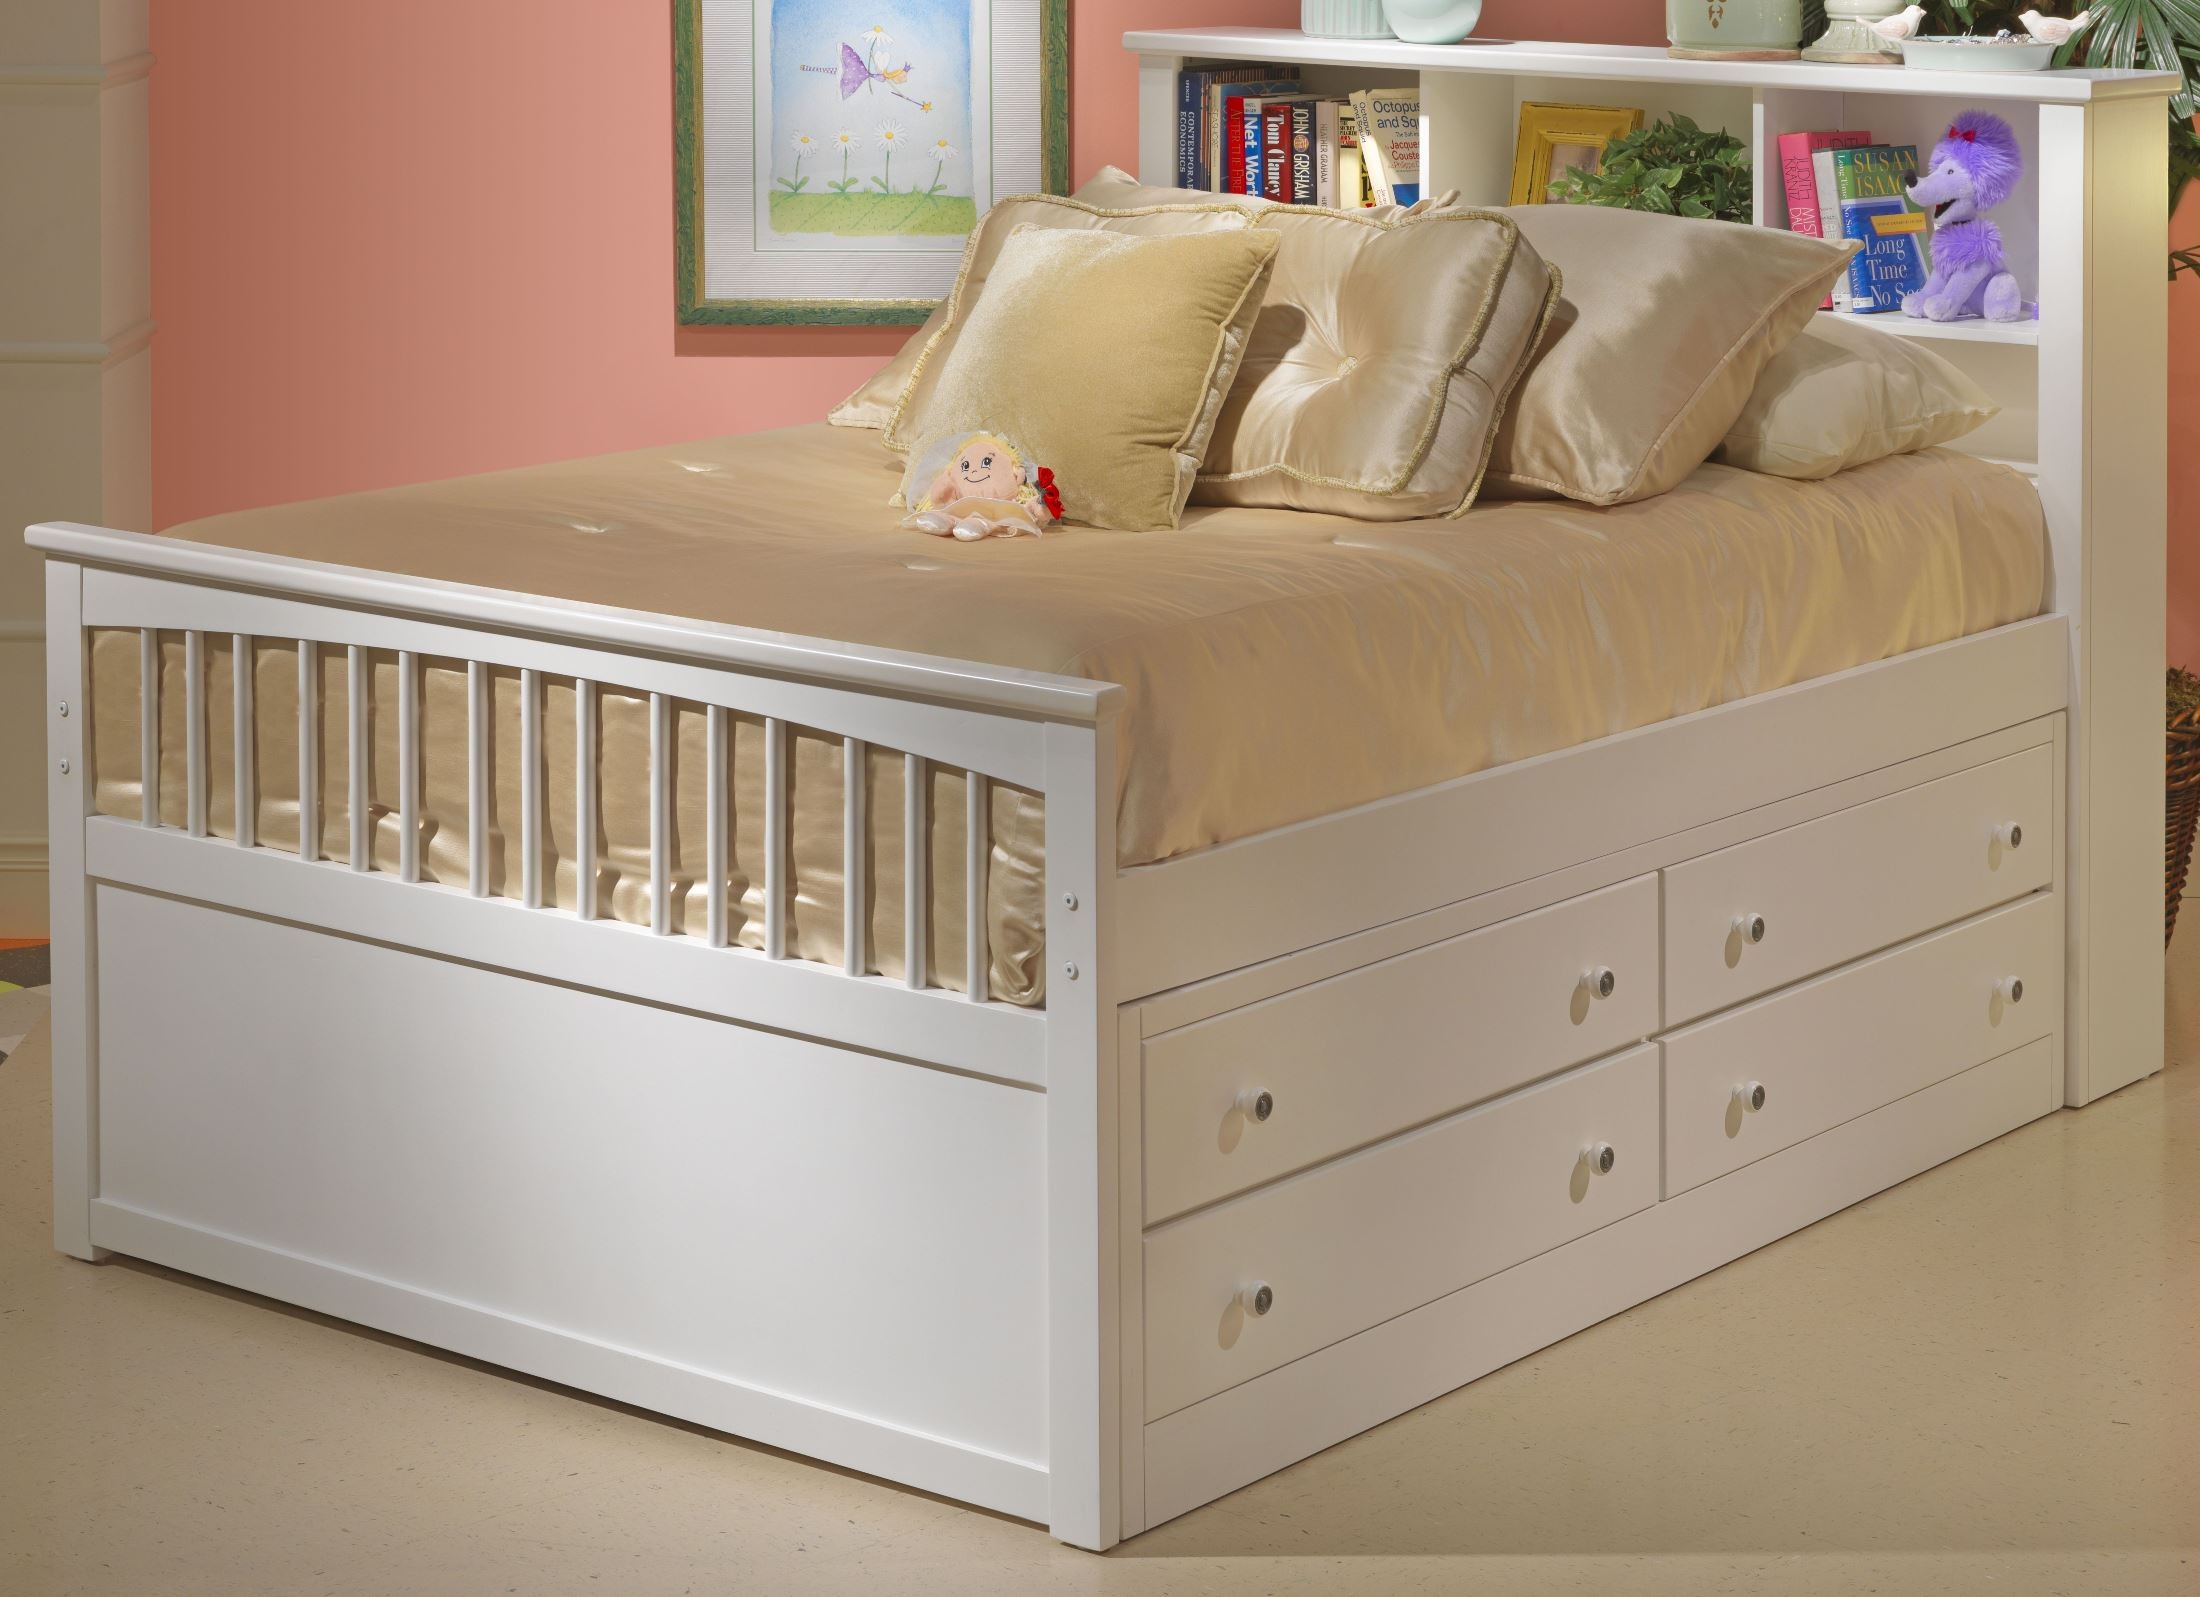 Bayfront White Youth Captain 39 S Bedroom Set From New Classics 1415 517 527 537 098 Coleman